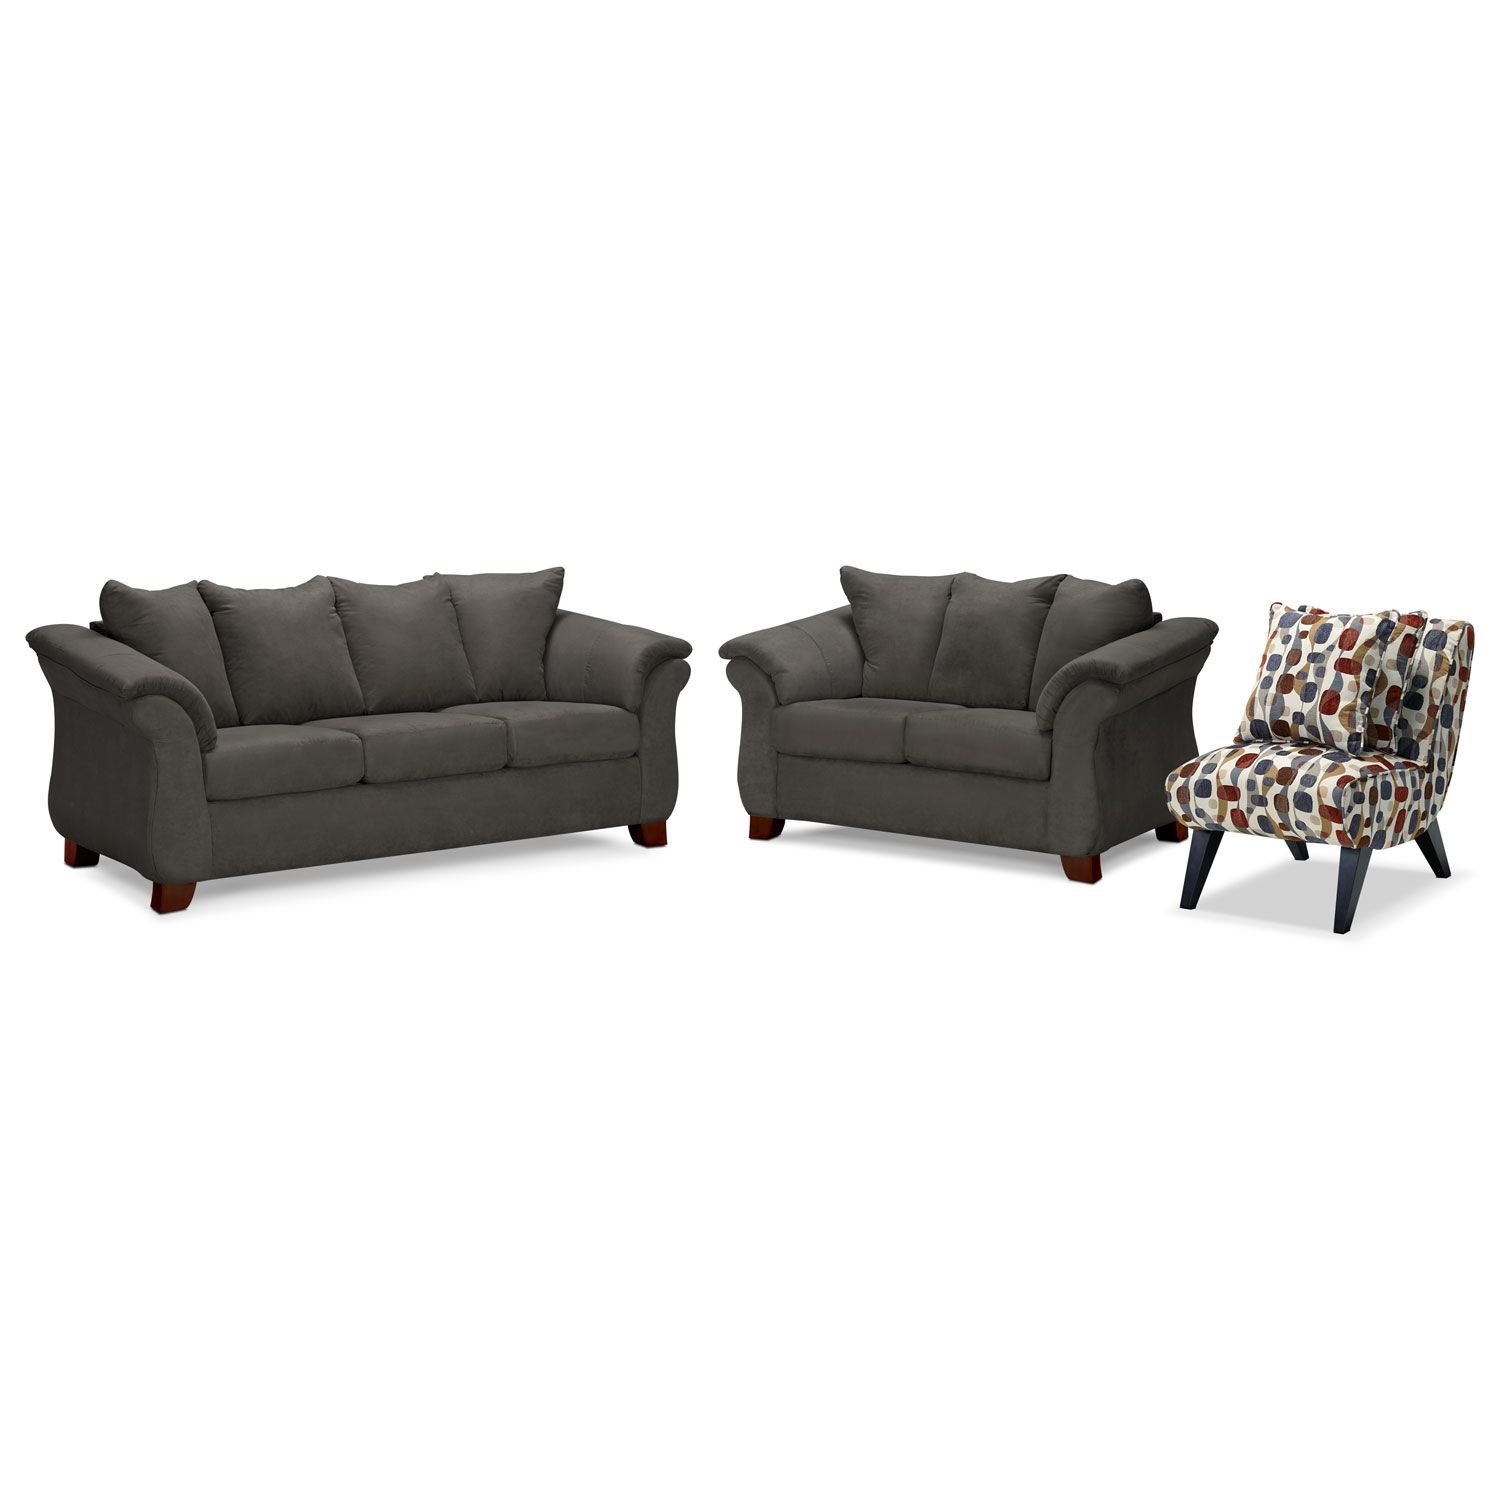 Living Room Furniture Adrian Graphite 3 Pc W Accent Chair